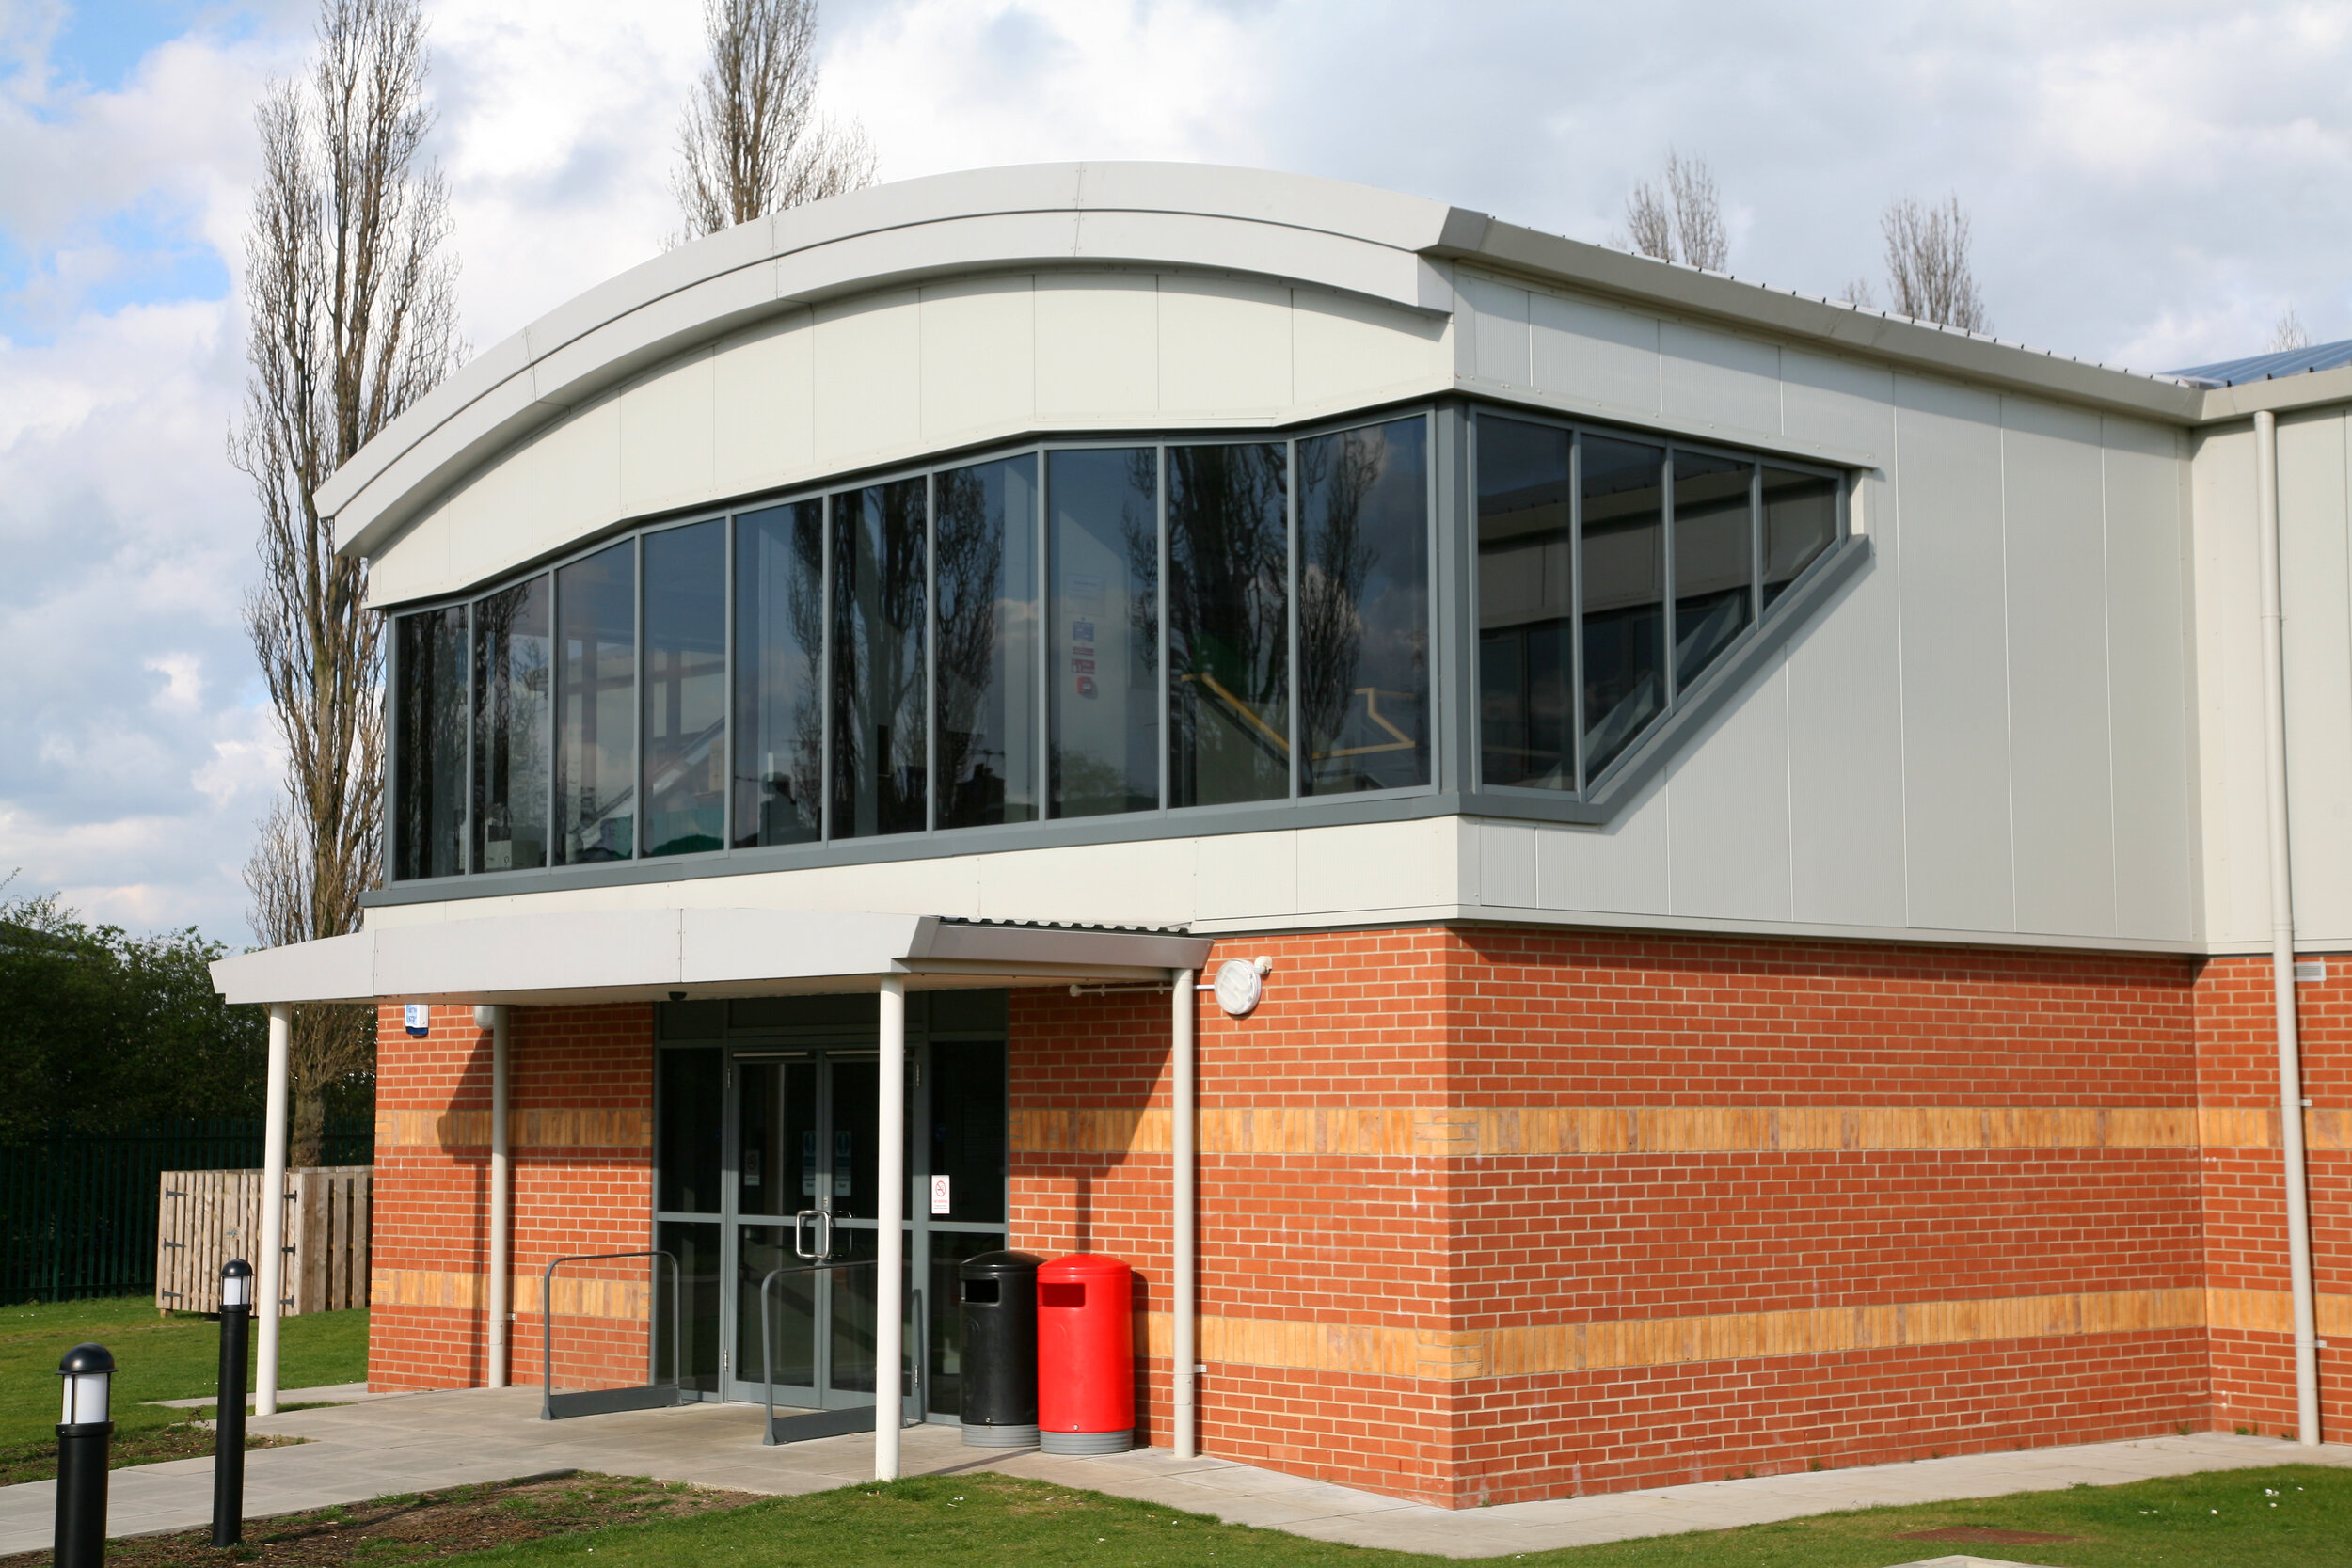 Ravendale Sports Pavilion - Location: Lincoln, LincolnshireValue: £40,000.00Sector: Commercial BuildingProducts: Aluminium casement windows, curtain walling and commercial entrance doors